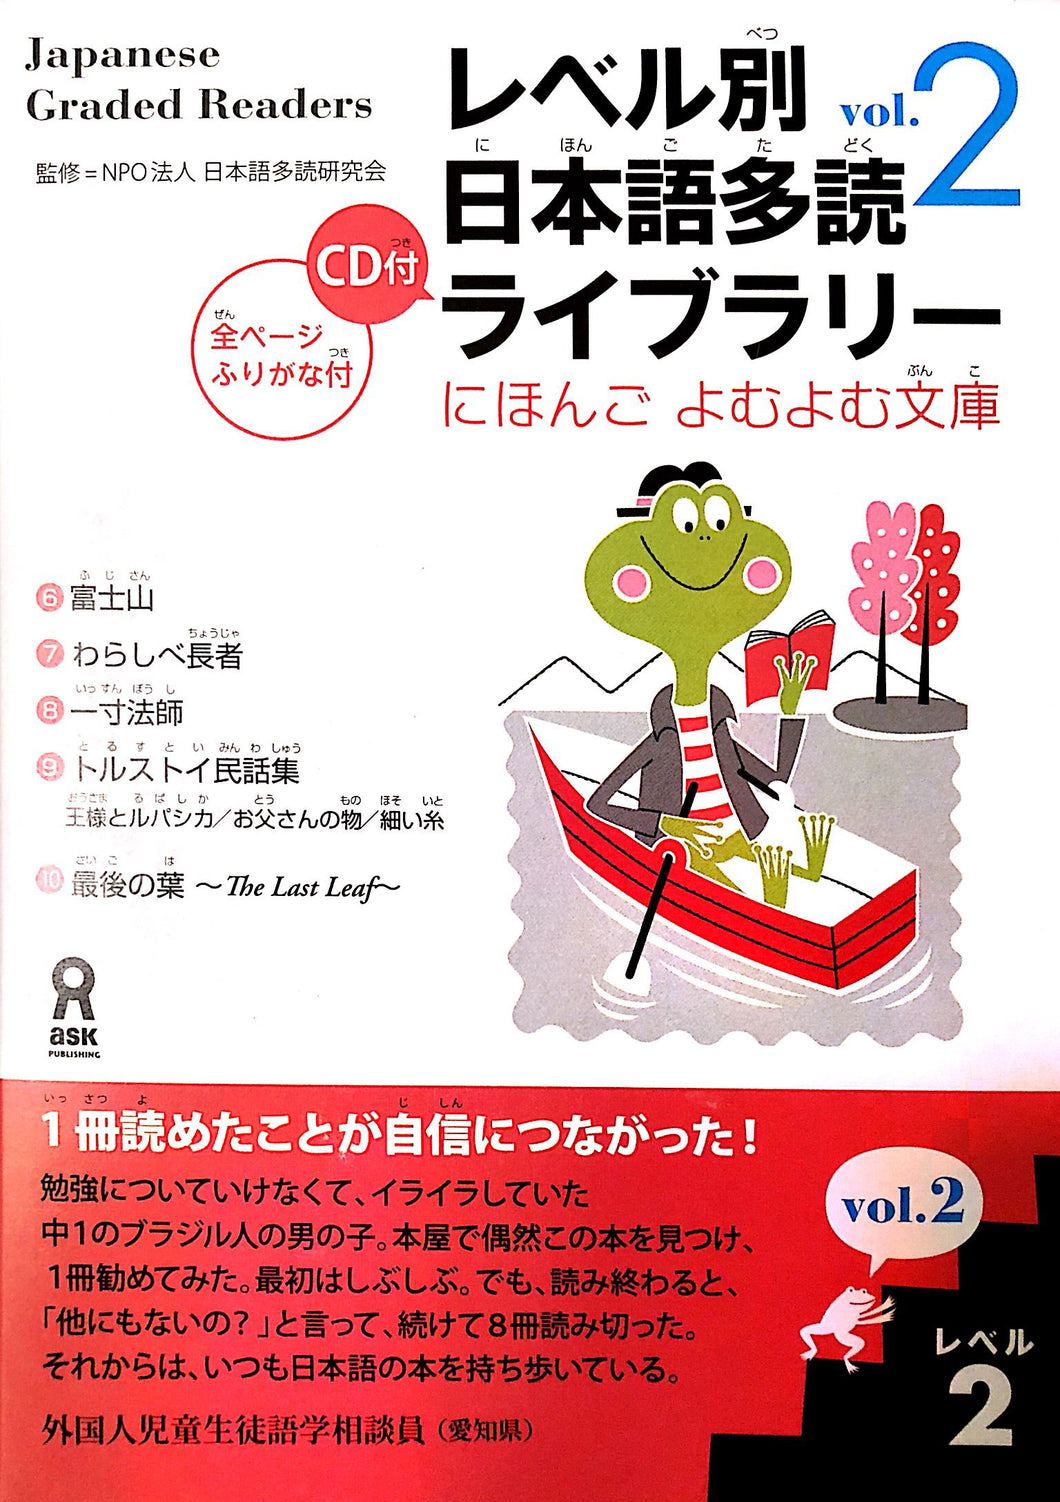 Japanese Graded Readers Level 2 Volume 2 - The Japan Shop